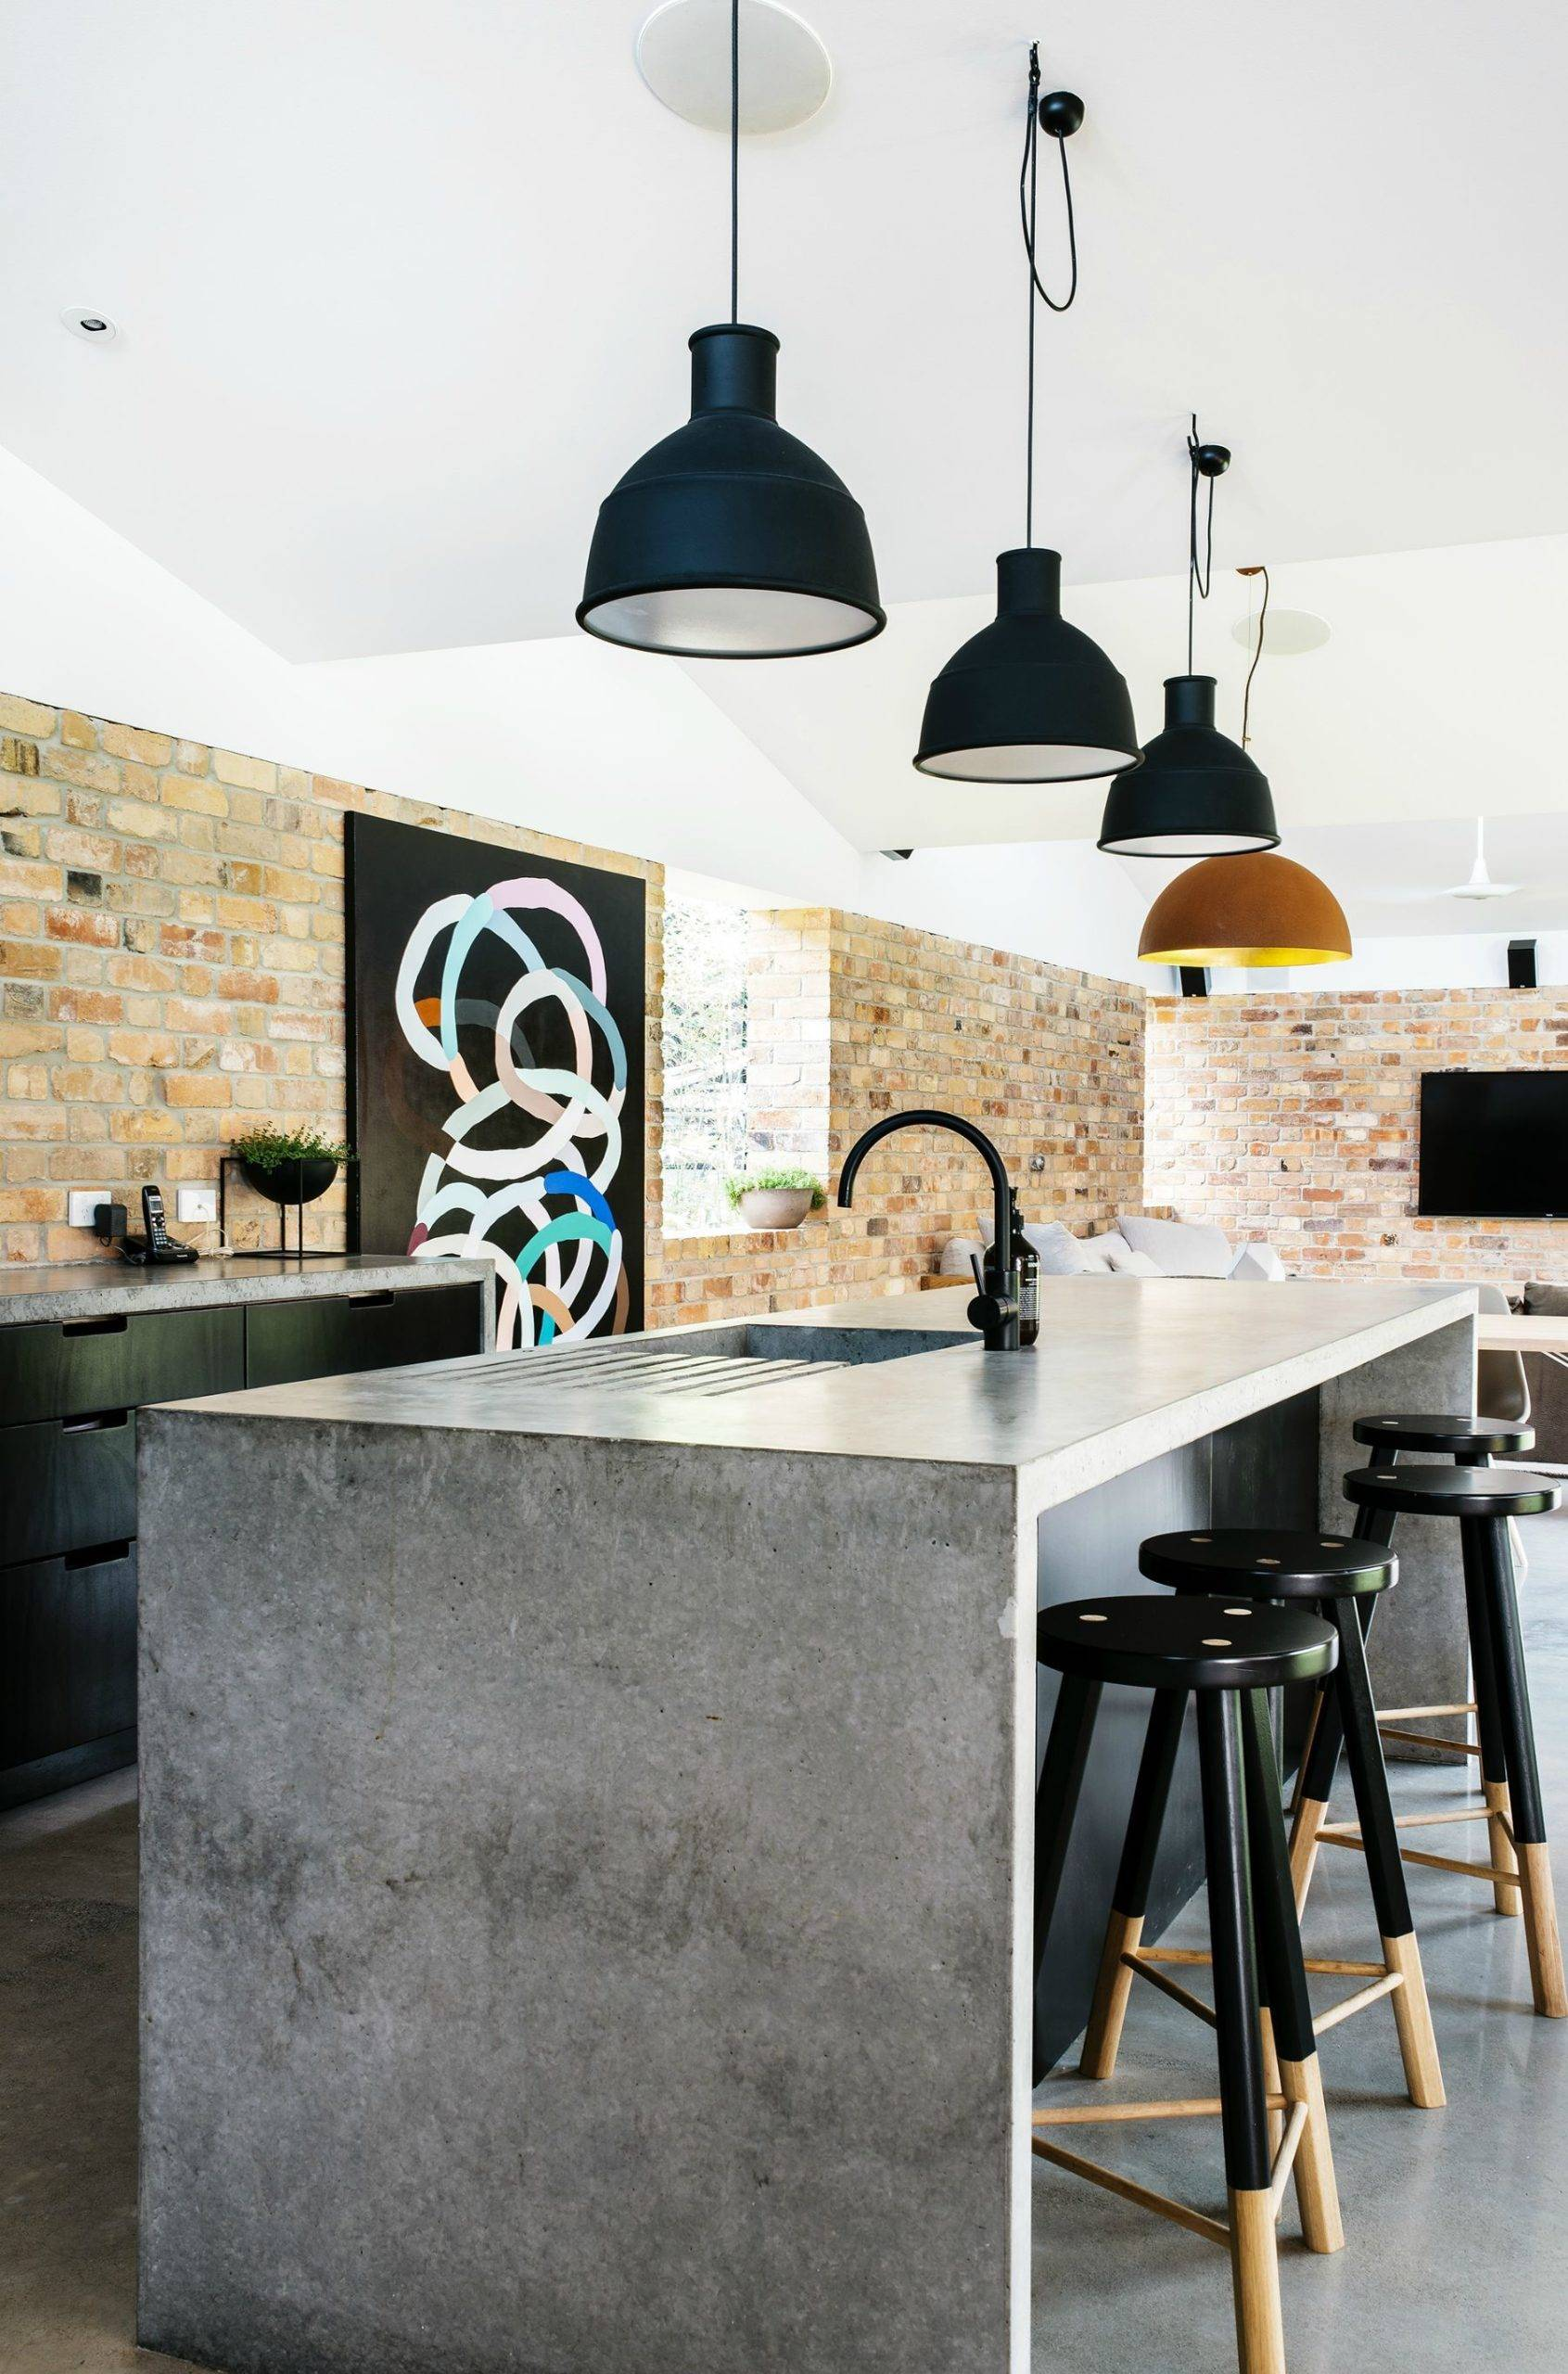 Large lamps over kitchen counter with sink